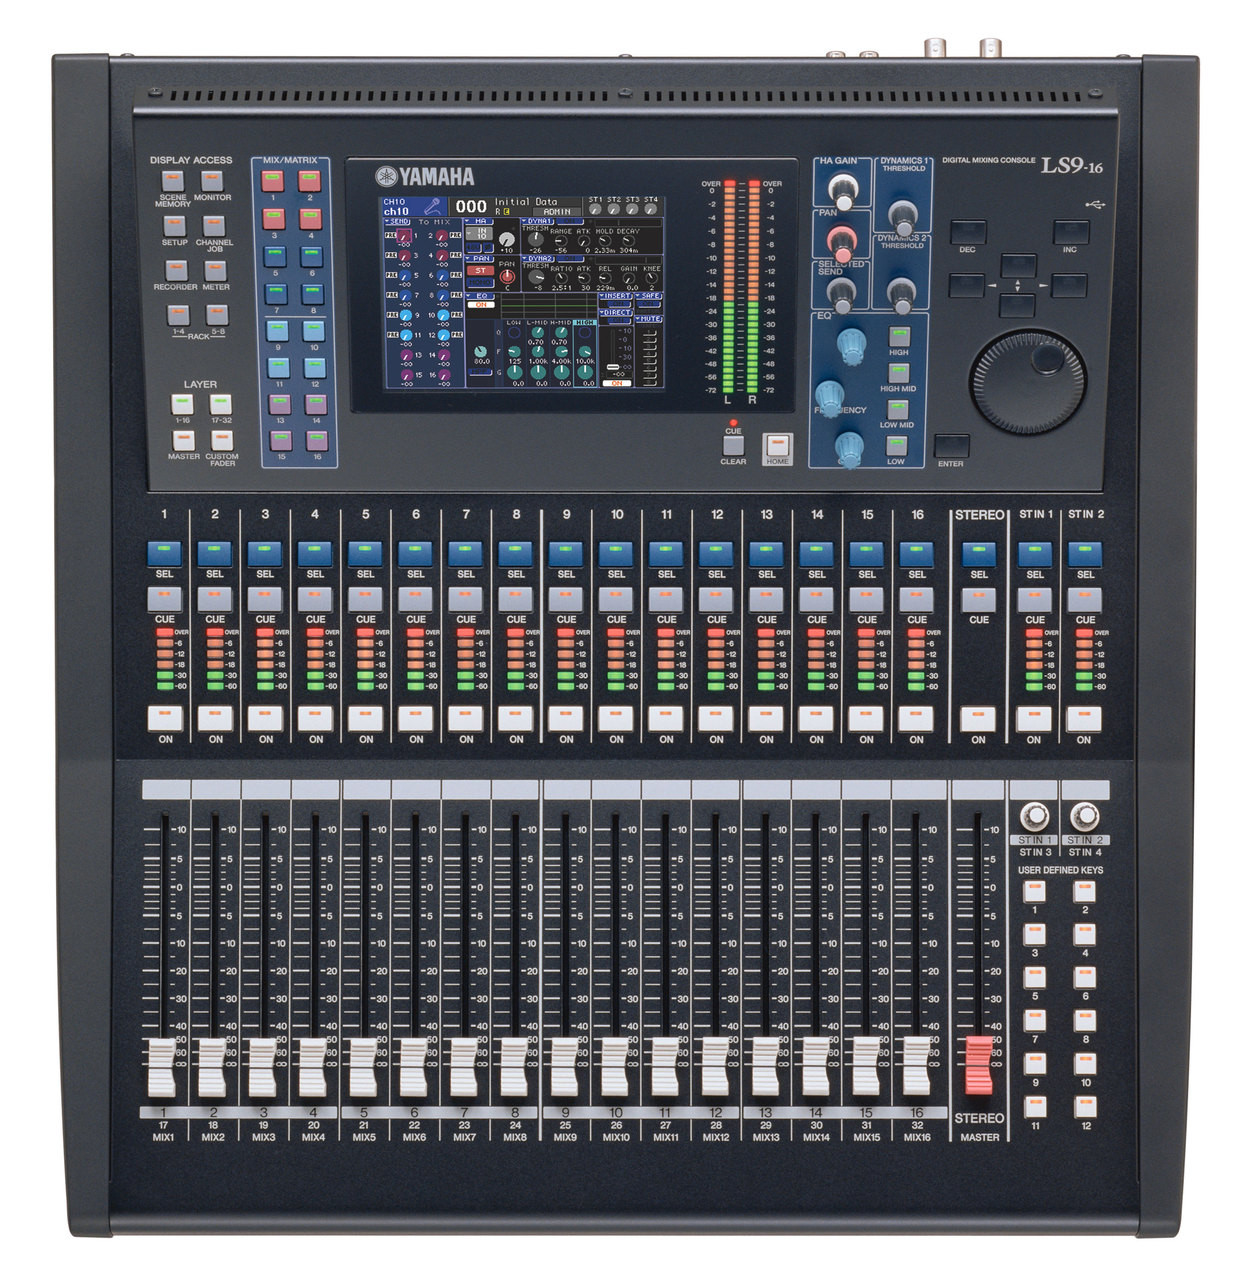 yamaha ls9 16 or 32 channel digital mixing console sound rh pnta com Yamaha LS9 32 Channel Yamaha LS9-32 Digital Mixer